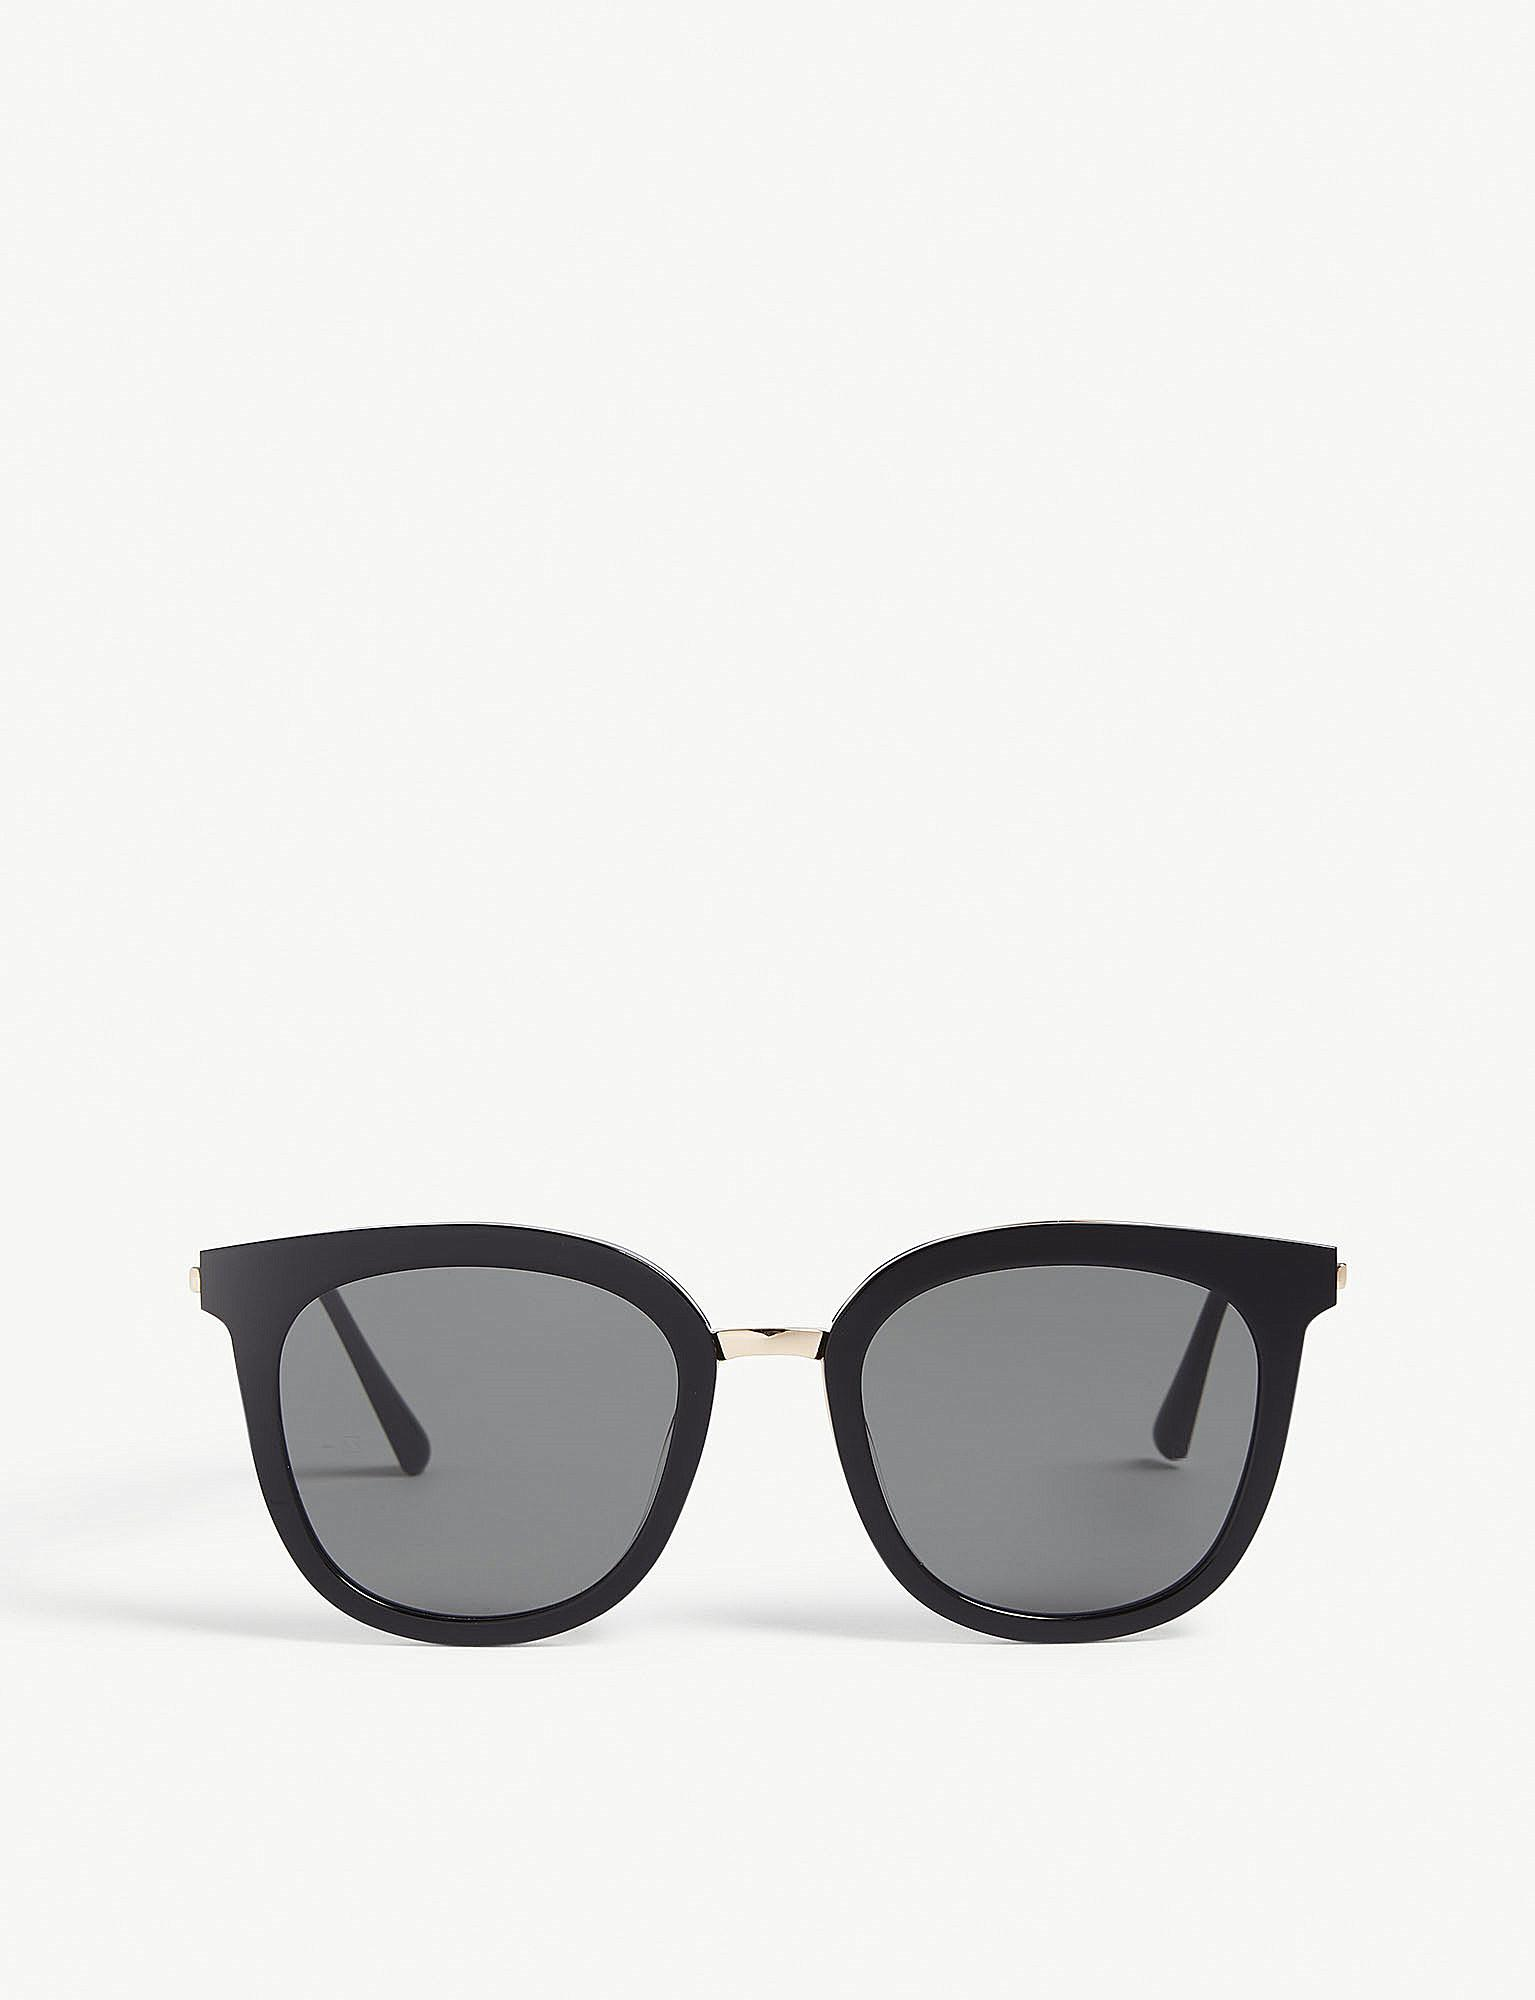 810eb17e1f0f Gentle Monster Slow Slowly Square-frame Sunglasses in Black - Lyst